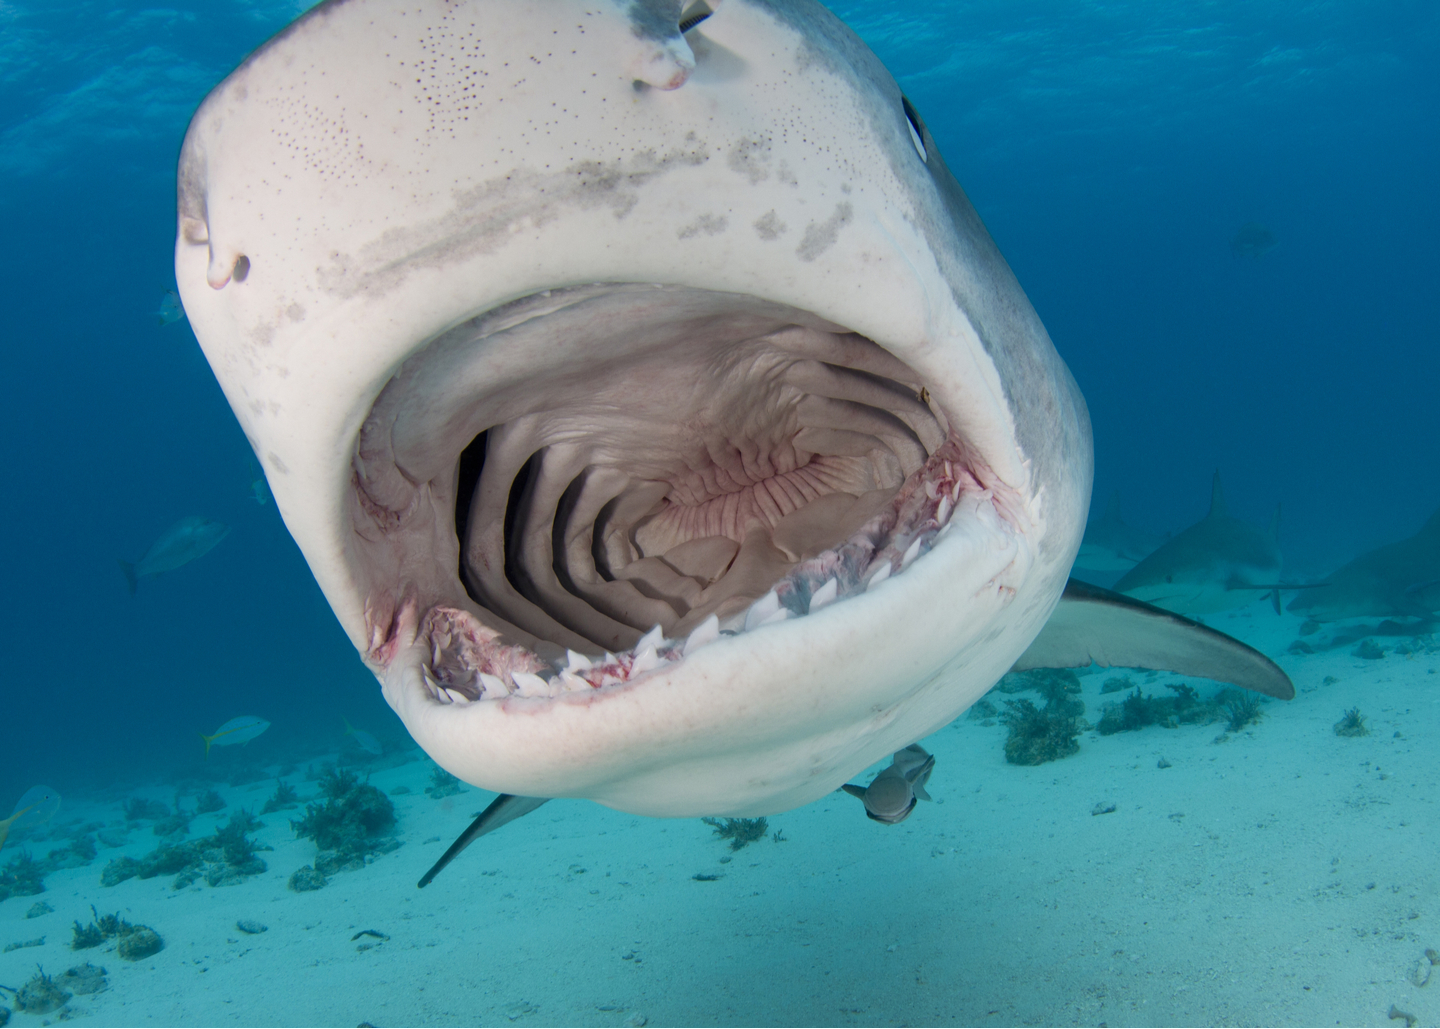 IF AT FIRST YOU DON'T SUCCEED TRY DOING IT THE SHARK CATCHER TOLD YOU TO